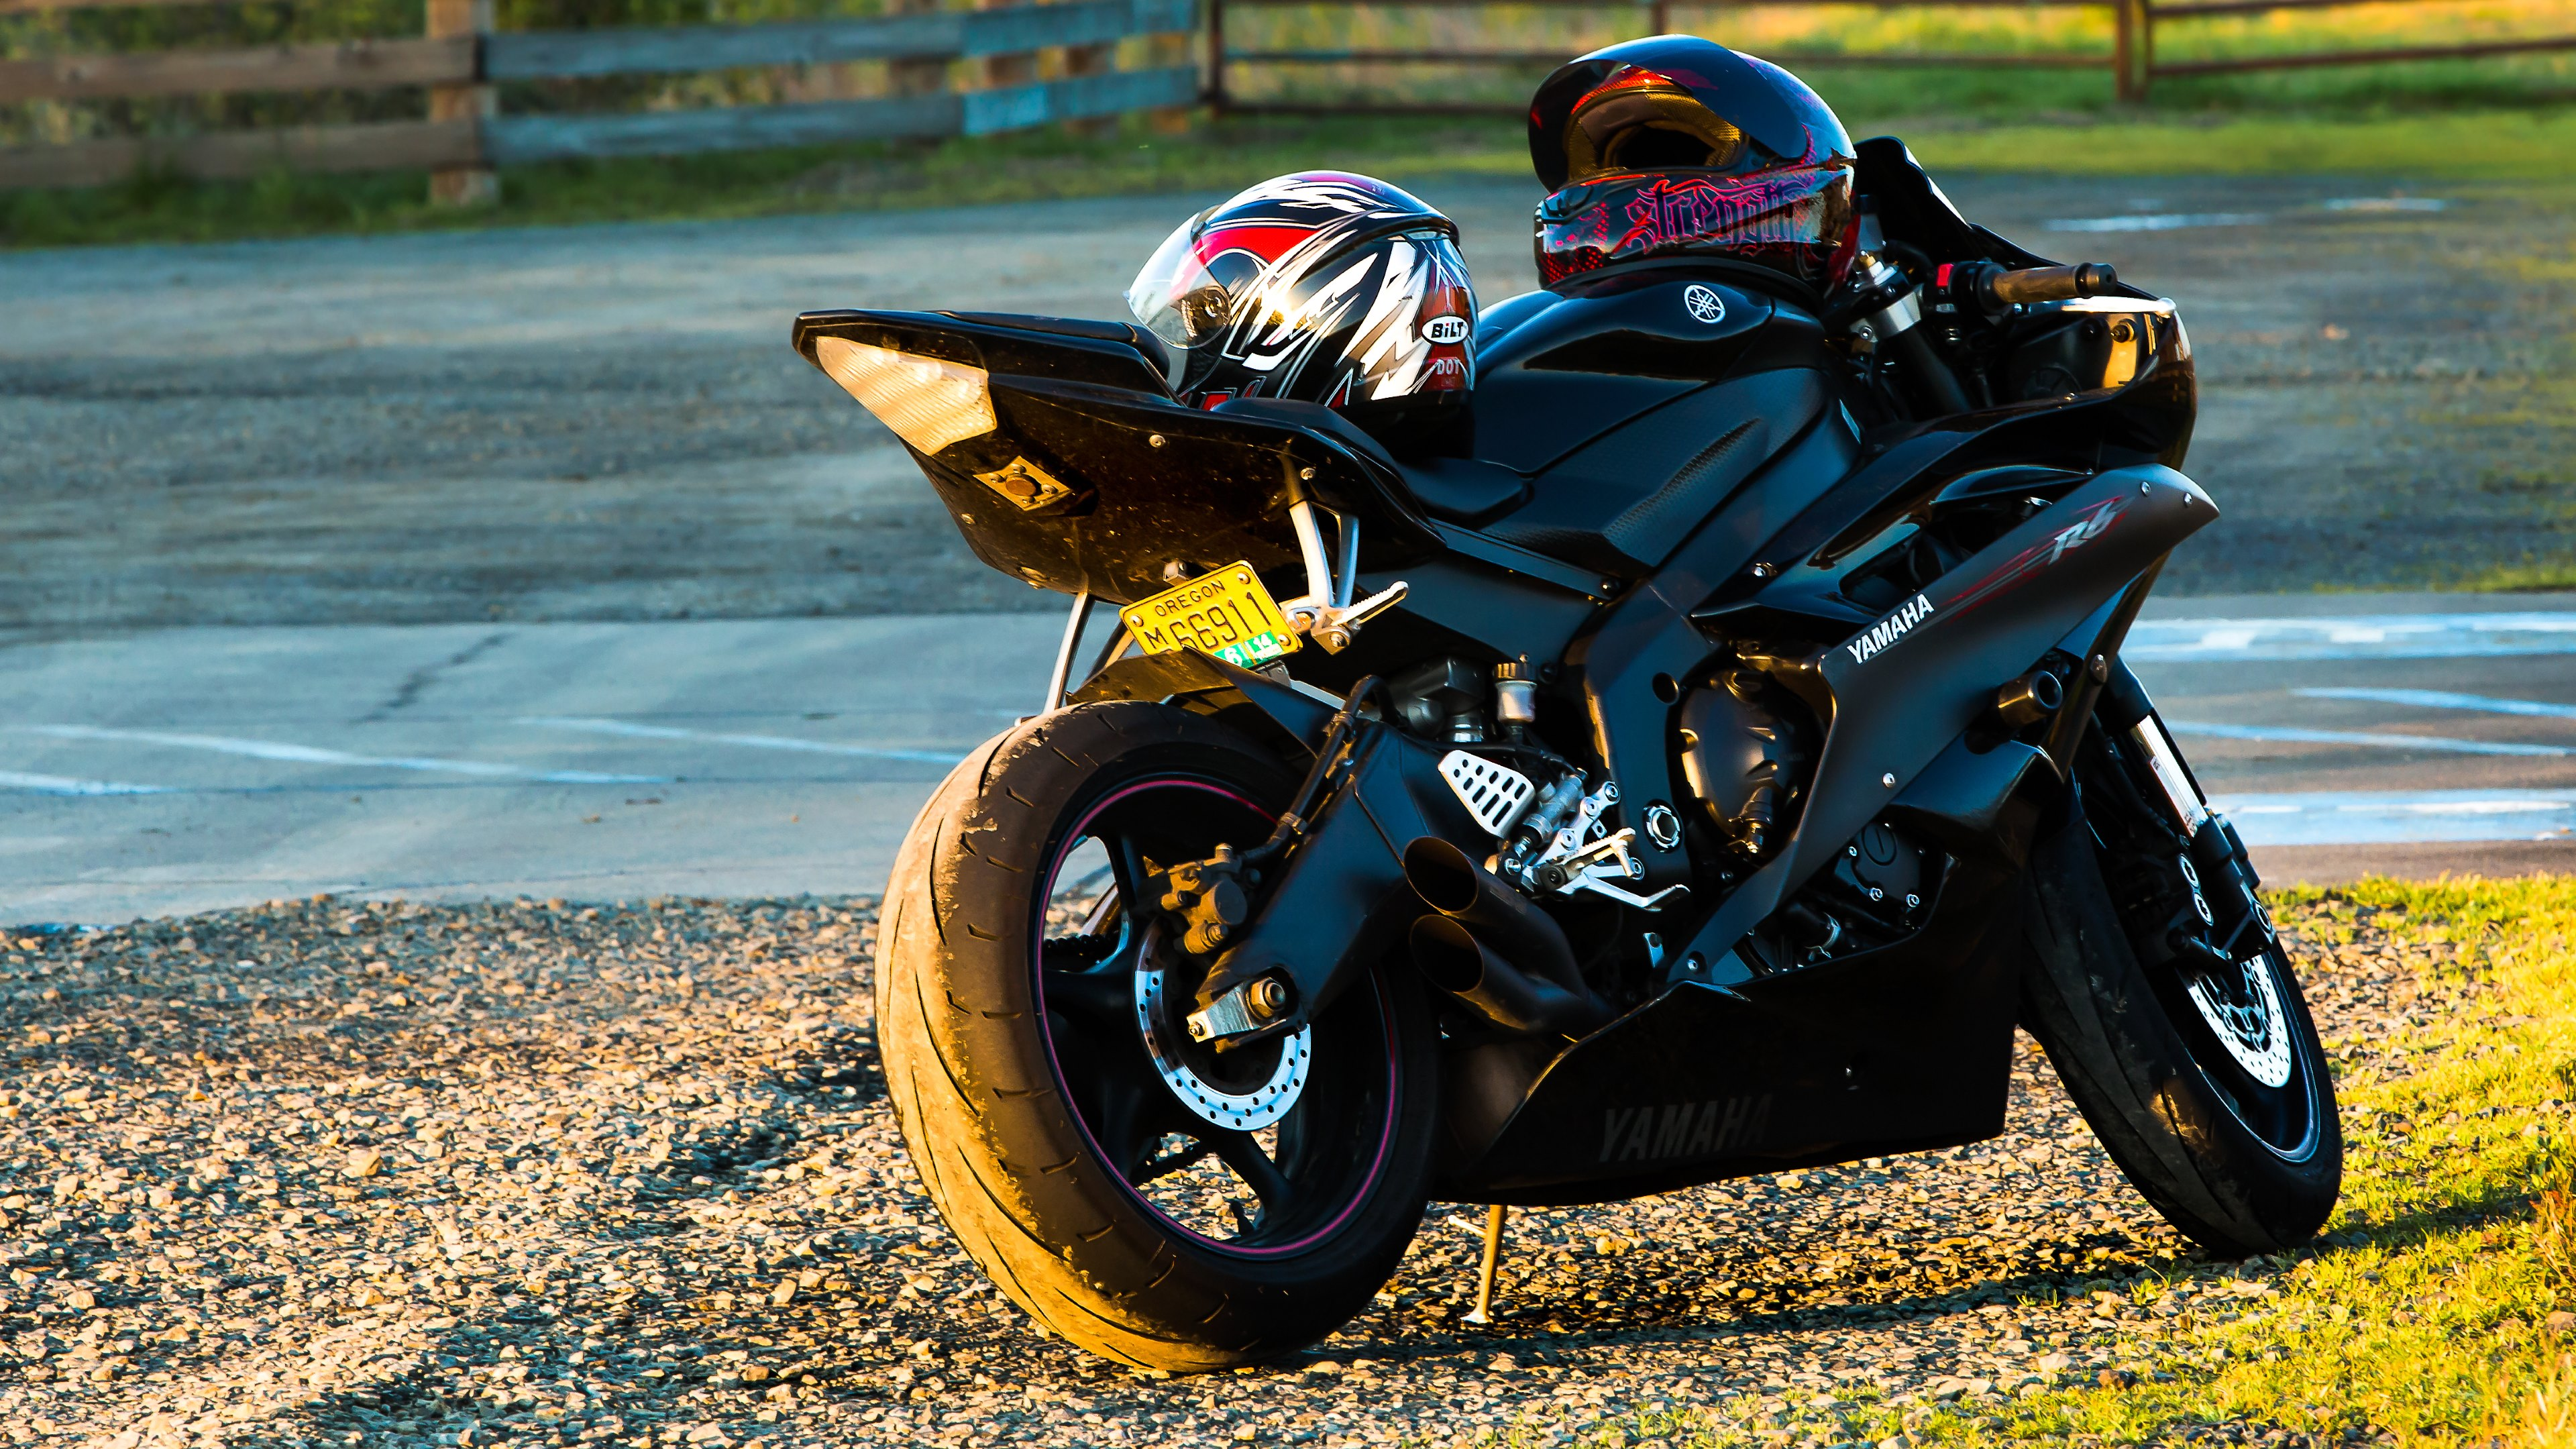 Motorcycle. Super Bike. Yamaha R6